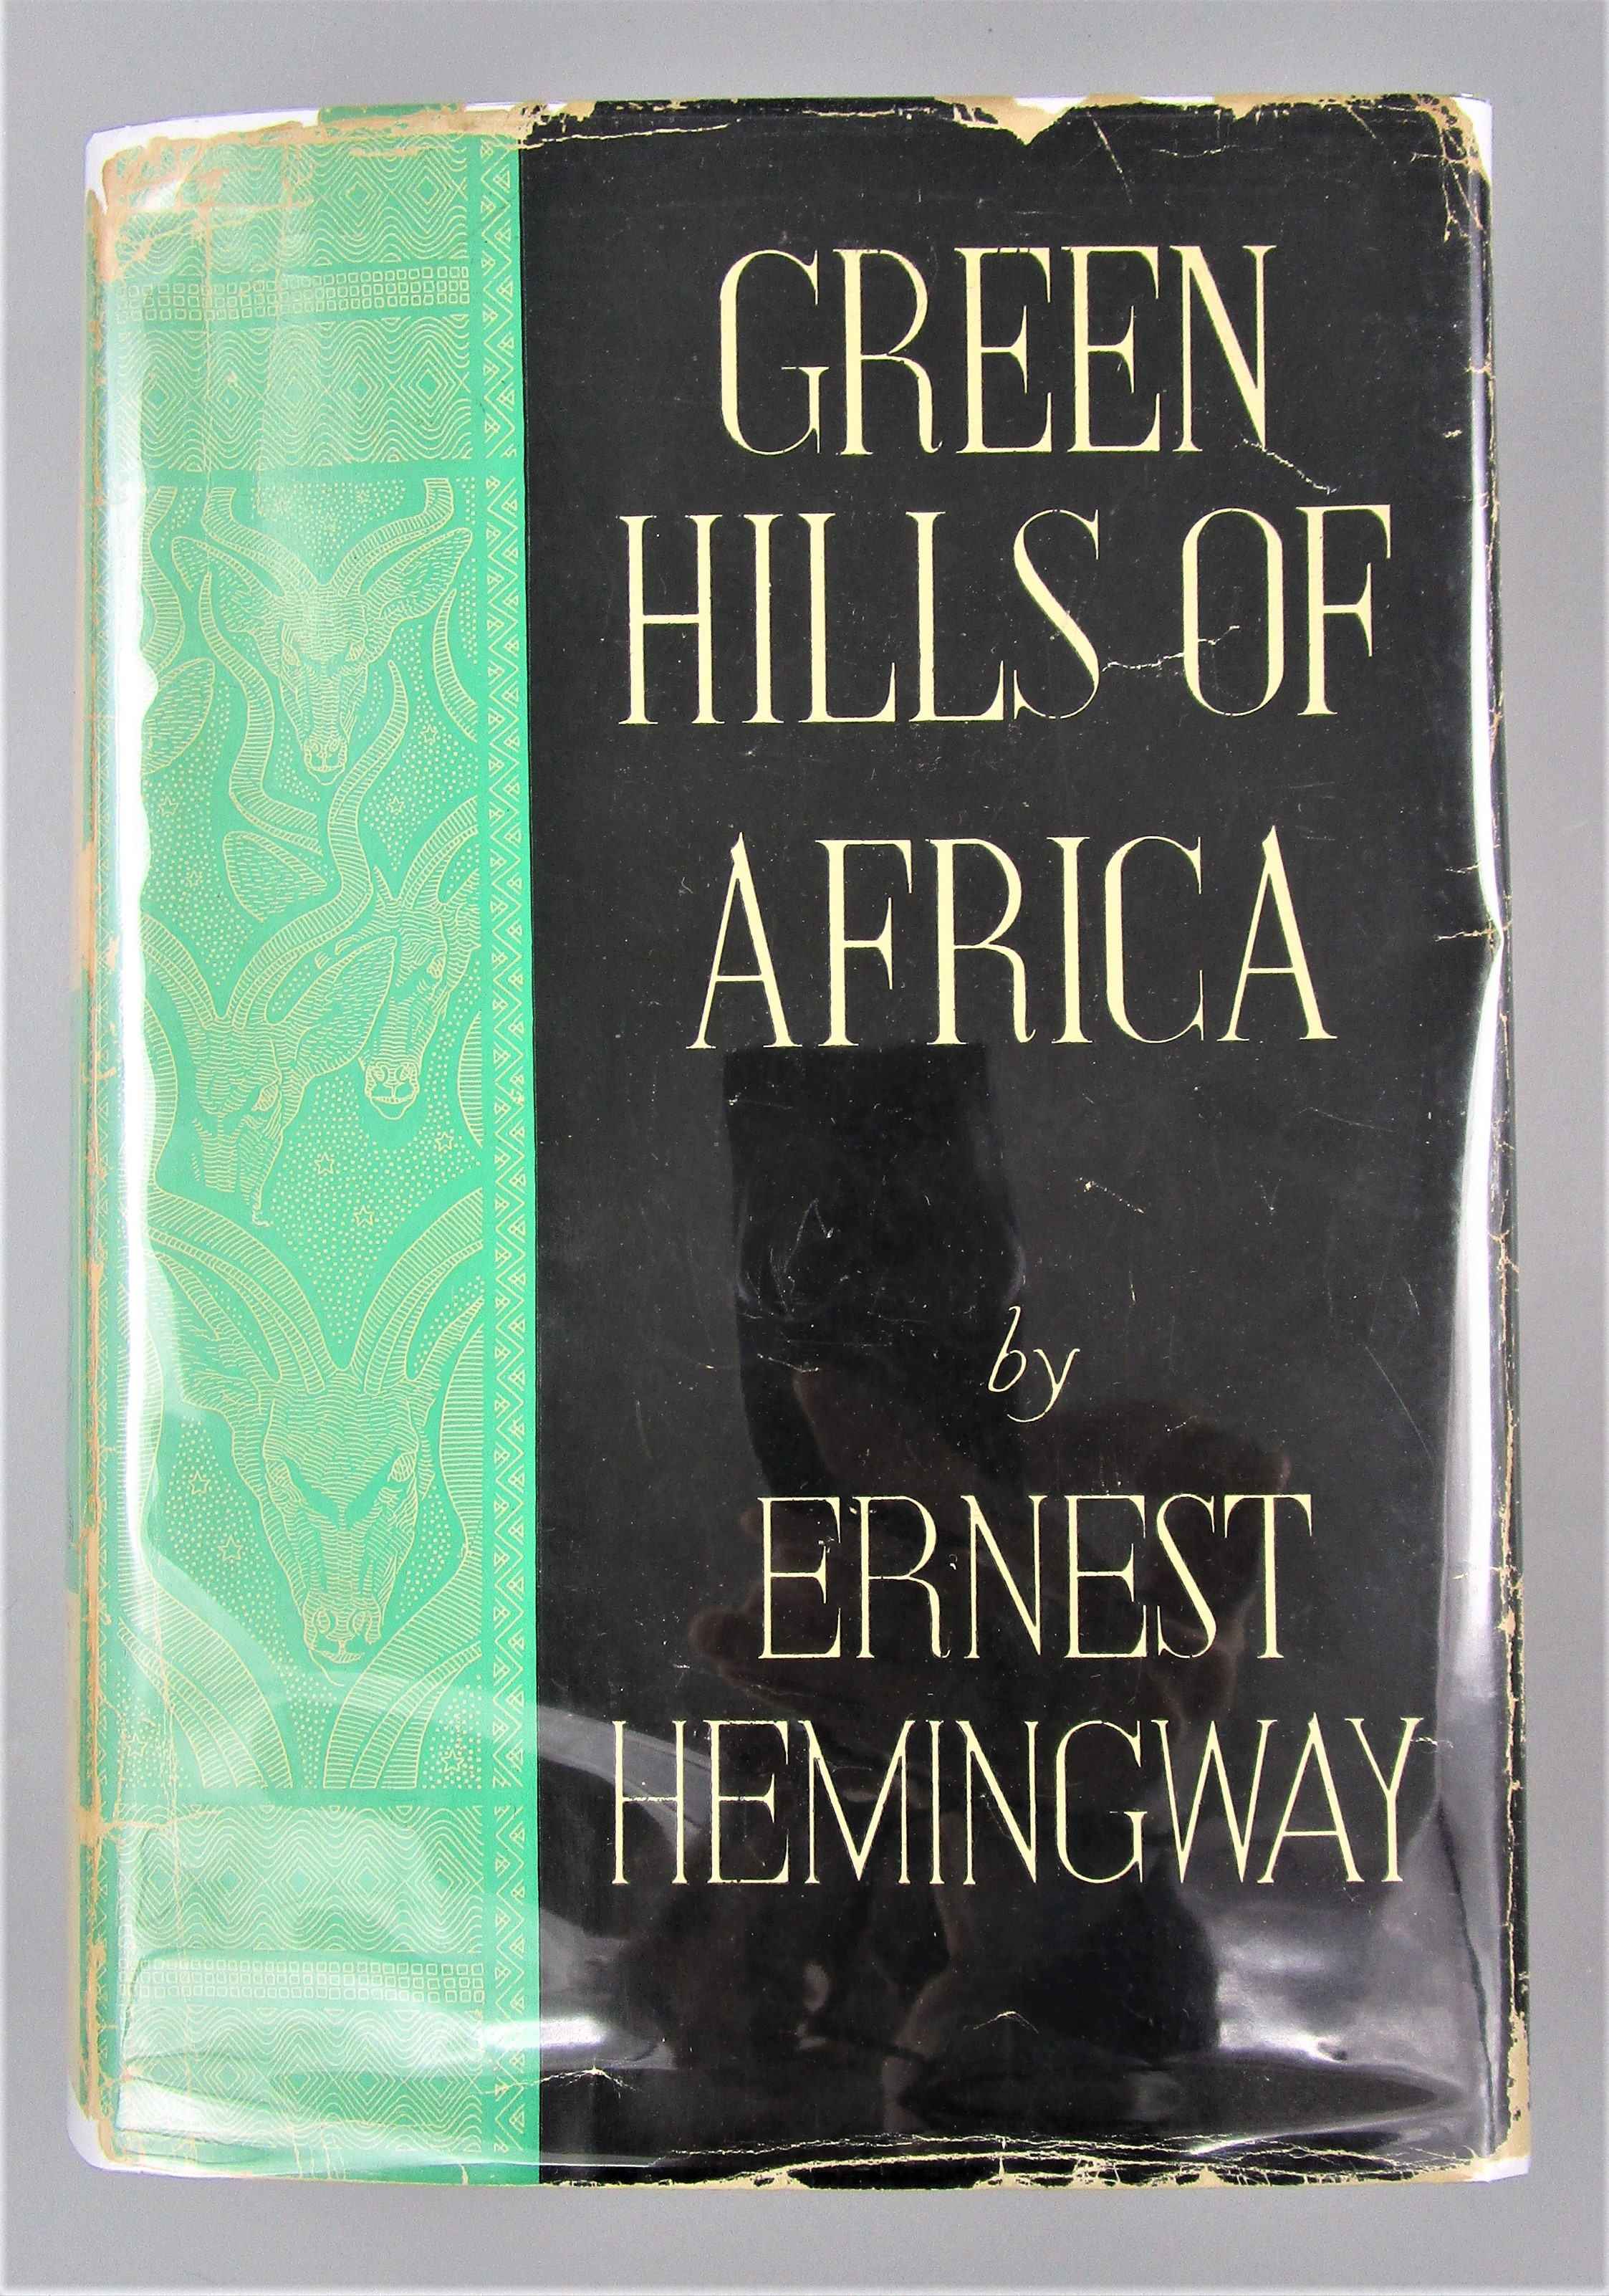 GREEN HILLS OF AFRICA, by Ernest Hemingway - 1935